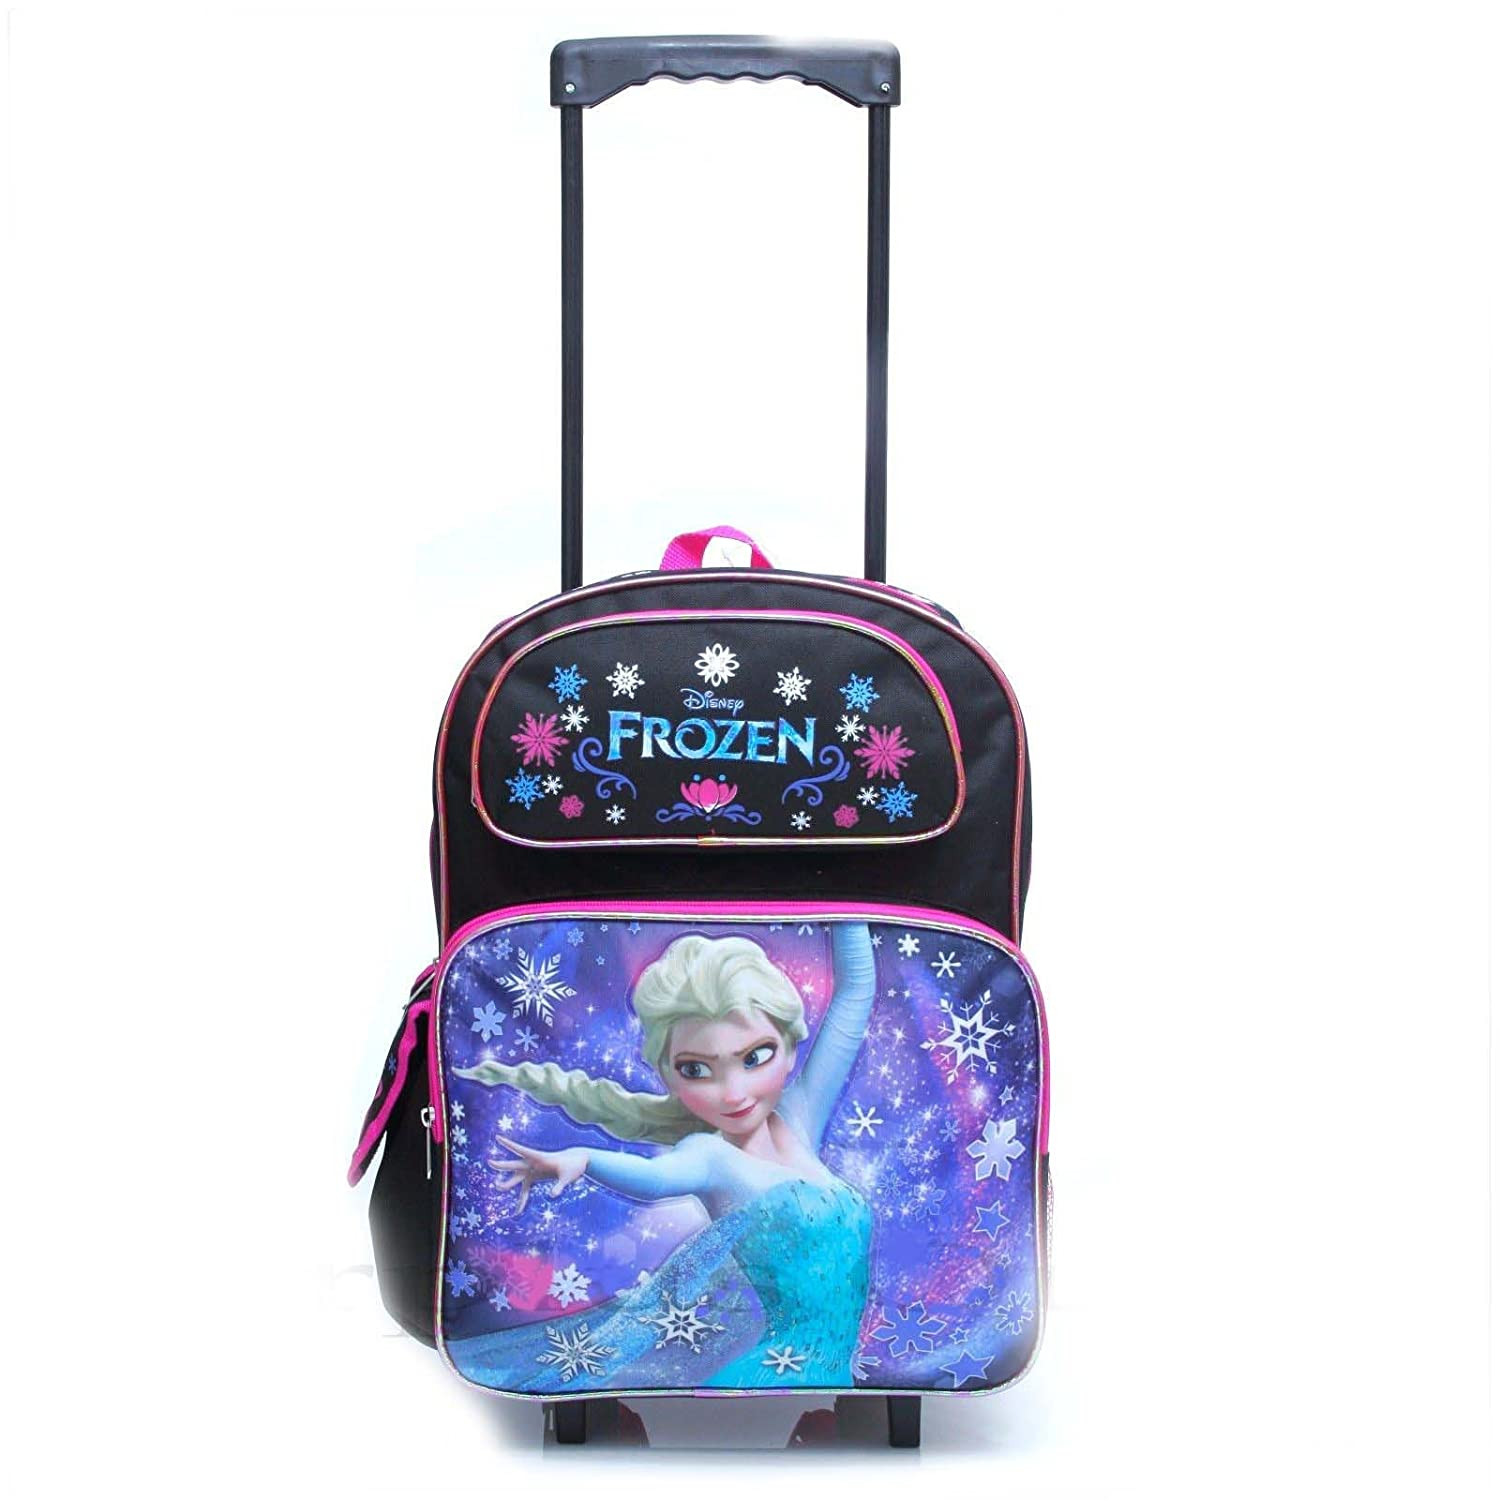 Disney Frozen Elsa Large Rolling Backpack Bag Luggage Tote